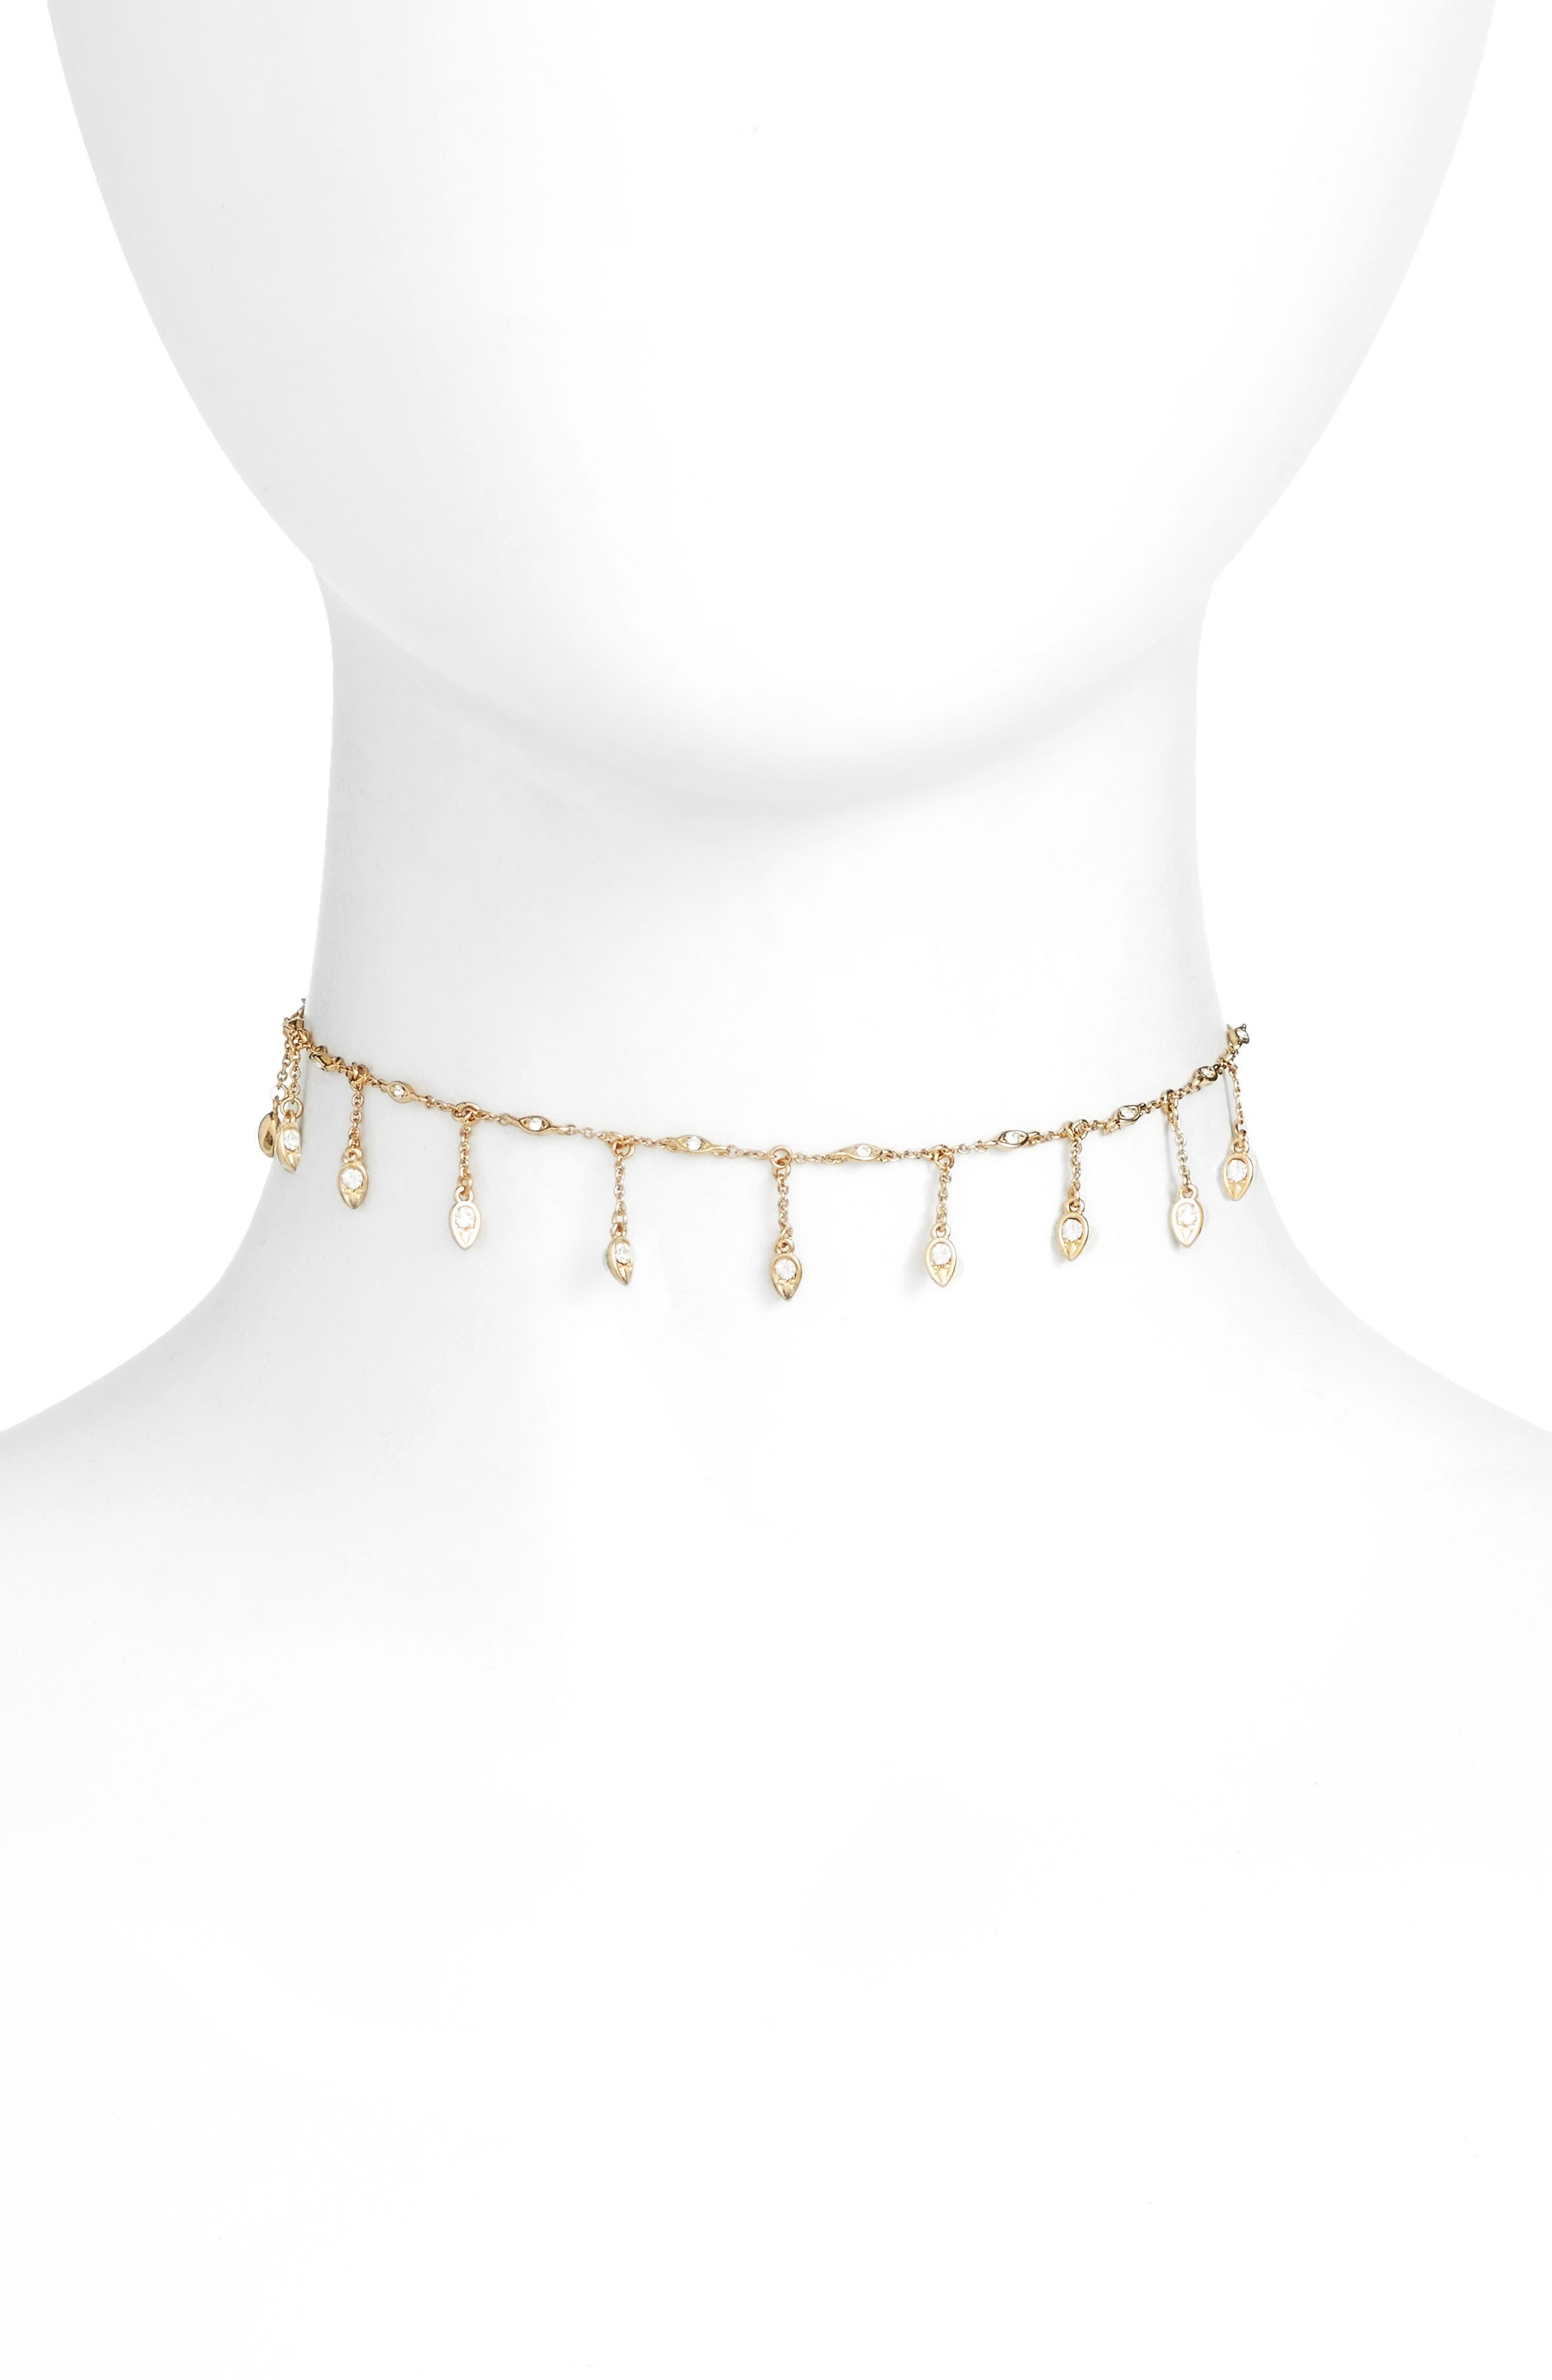 Alternate Image 1 Selected - Luv AJ Revel Starburst Choker Necklace